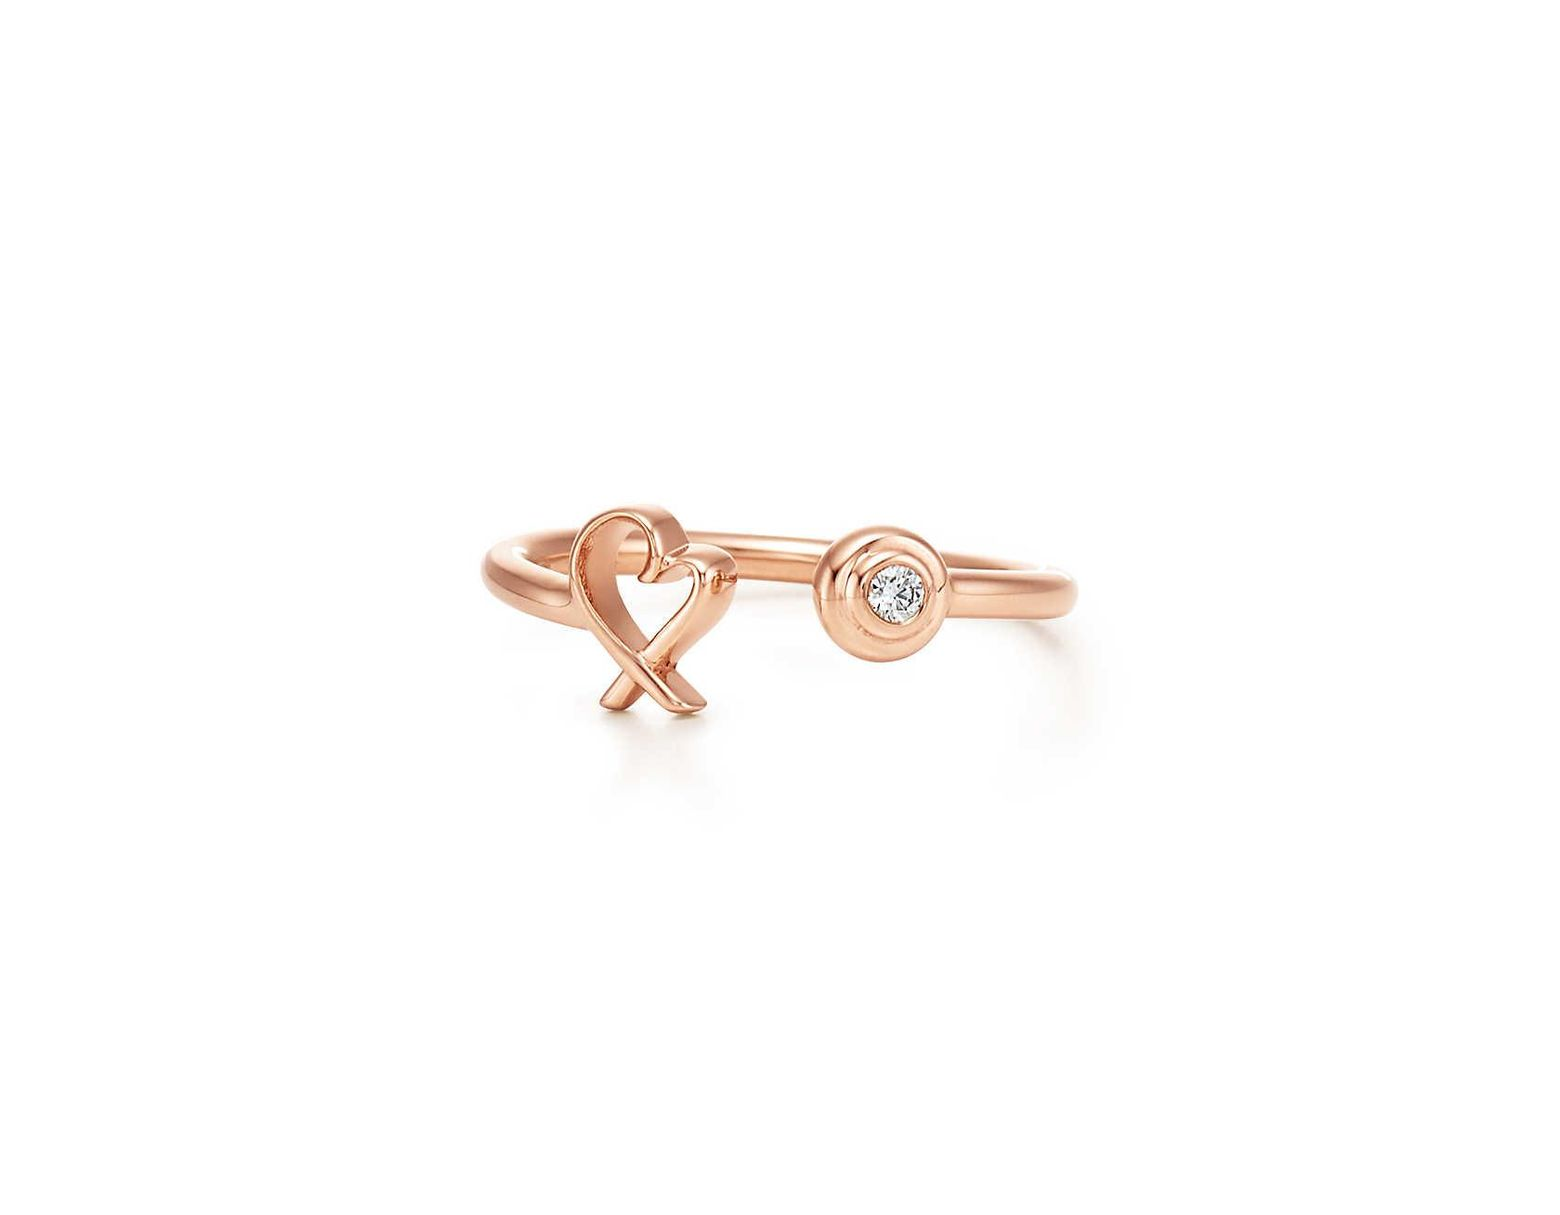 03a865c1c63cf Tiffany & Co. Paloma Picasso® Loving Heart Wire Ring In 18ct Rose Gold With  Diamonds - Size 7 1/2 in Pink - Lyst